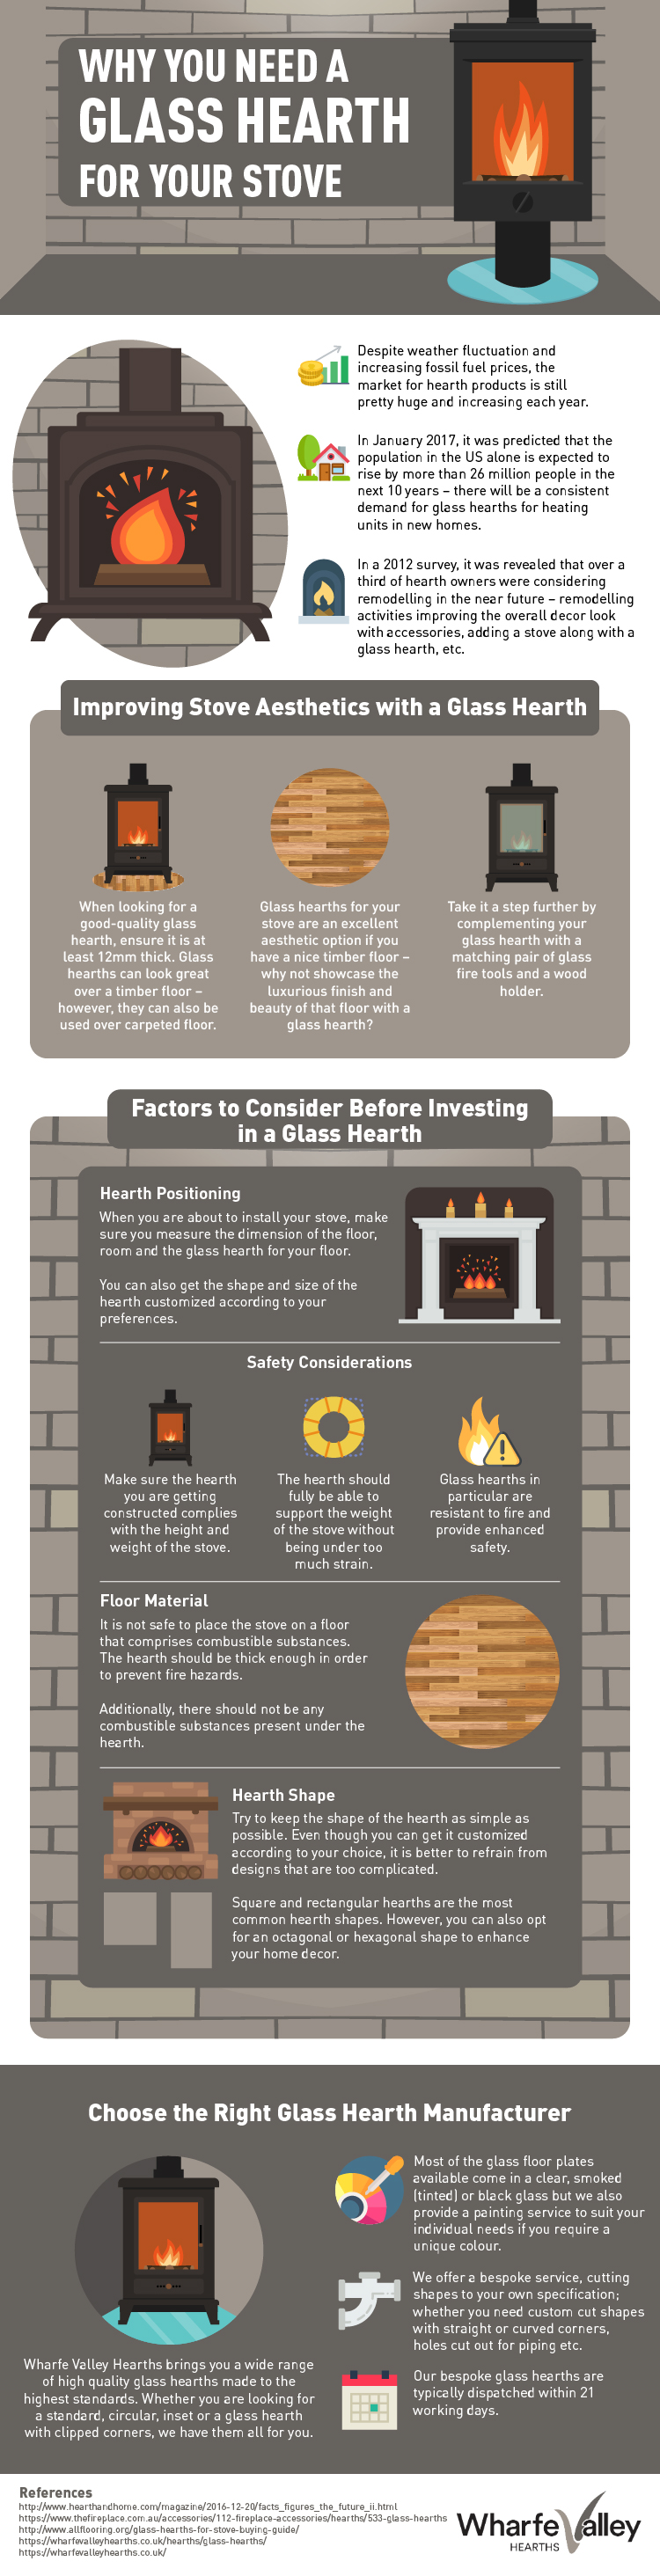 Why You Need a Glass Hearth for Your Stove Infographic